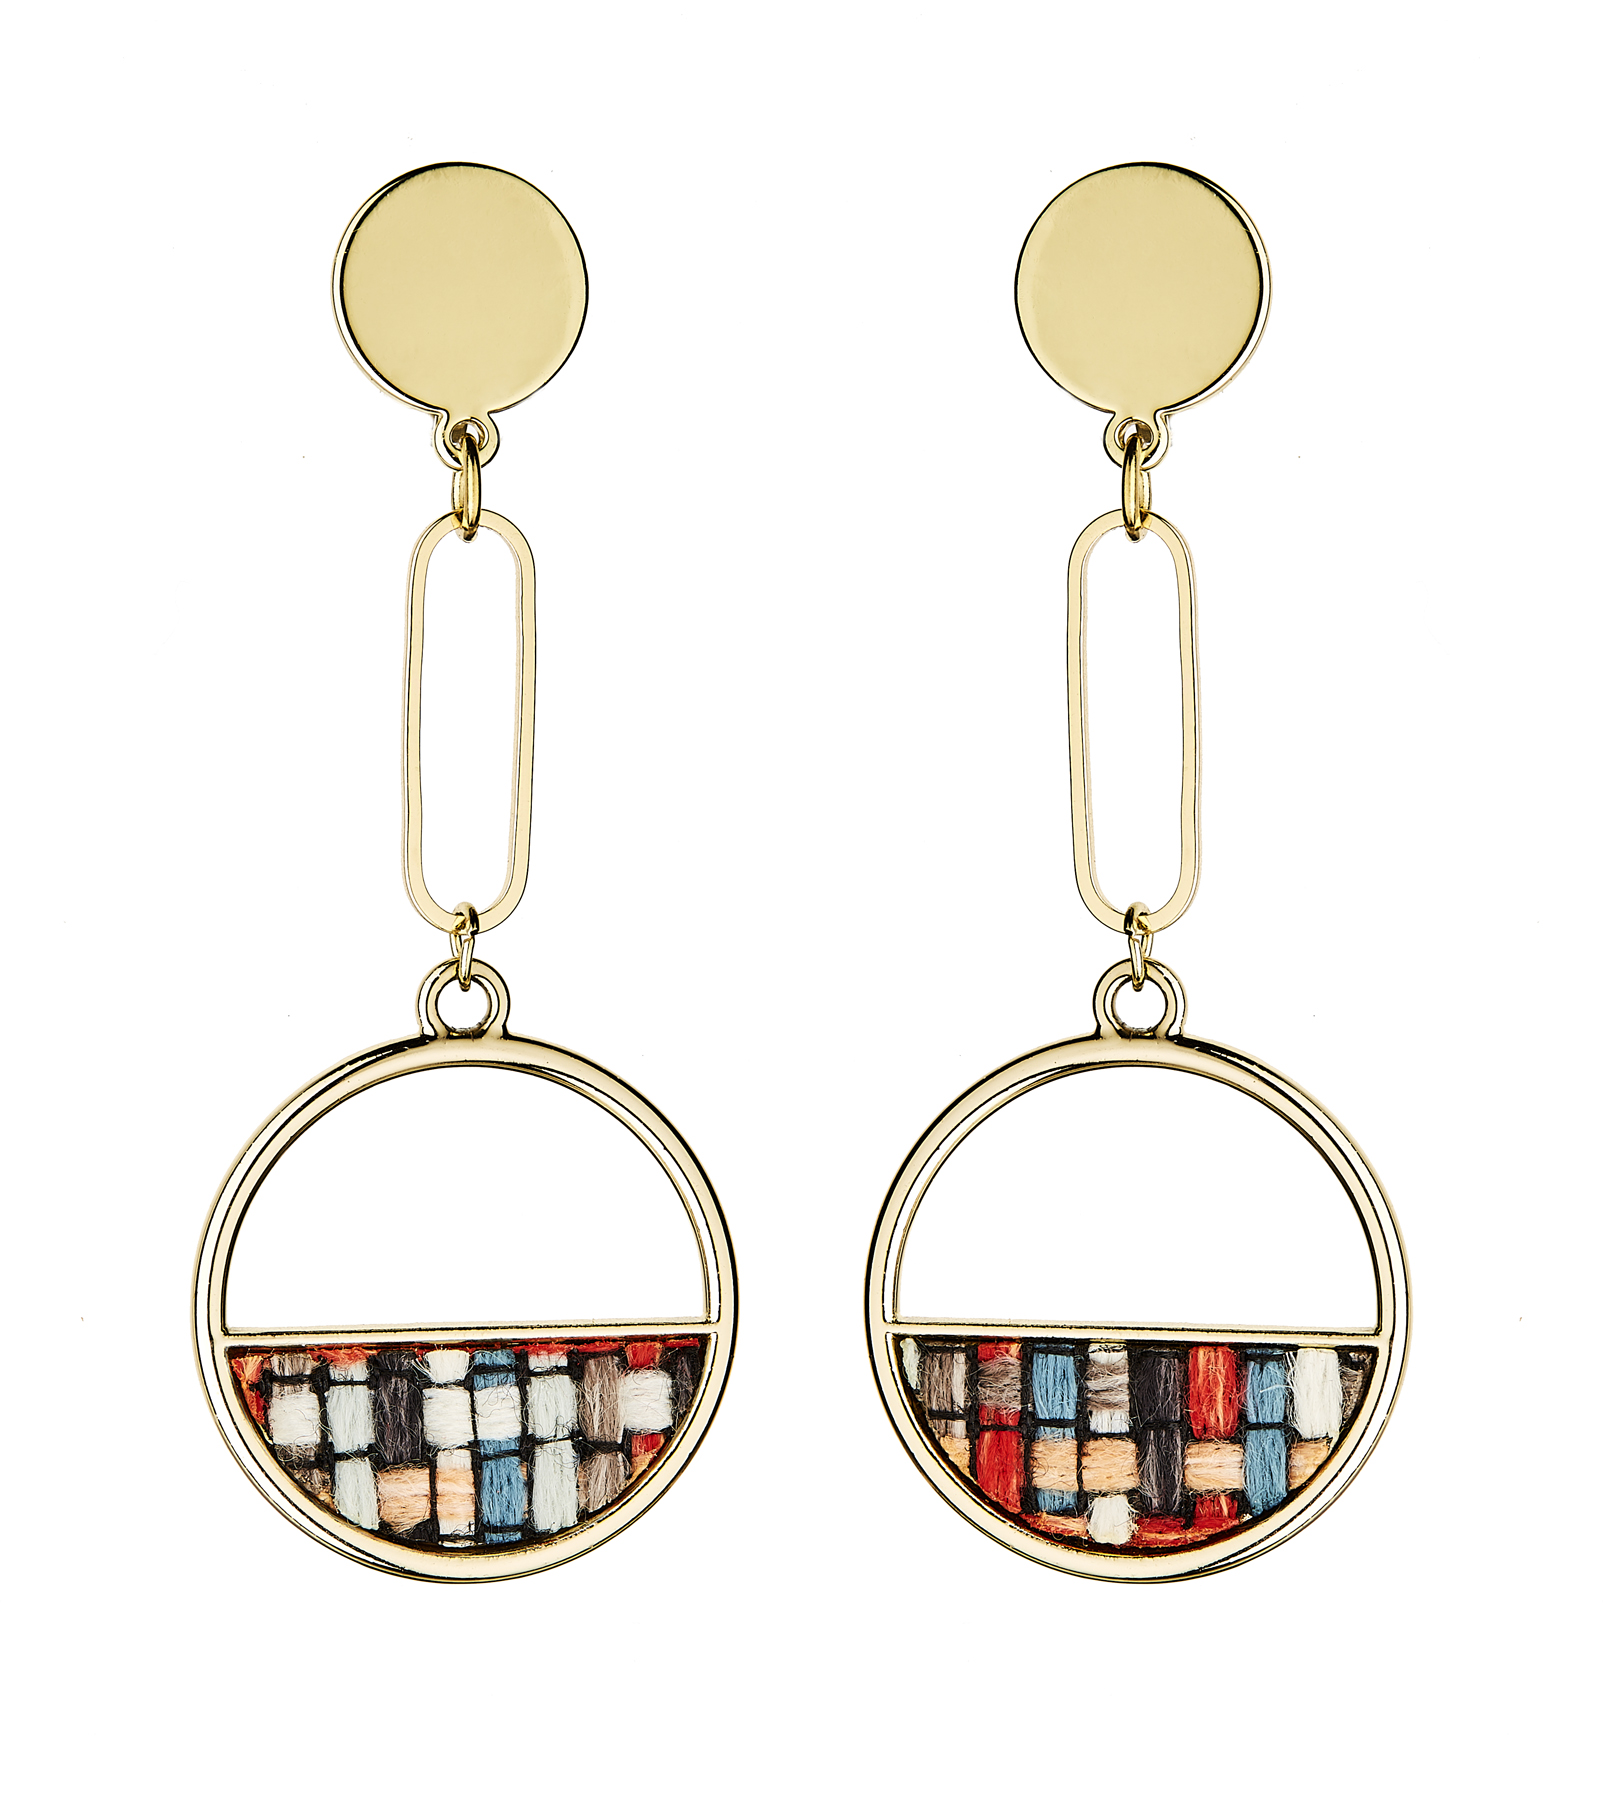 Clip On Earrings - Elvia B - gold dangle earring inset with checked fabric